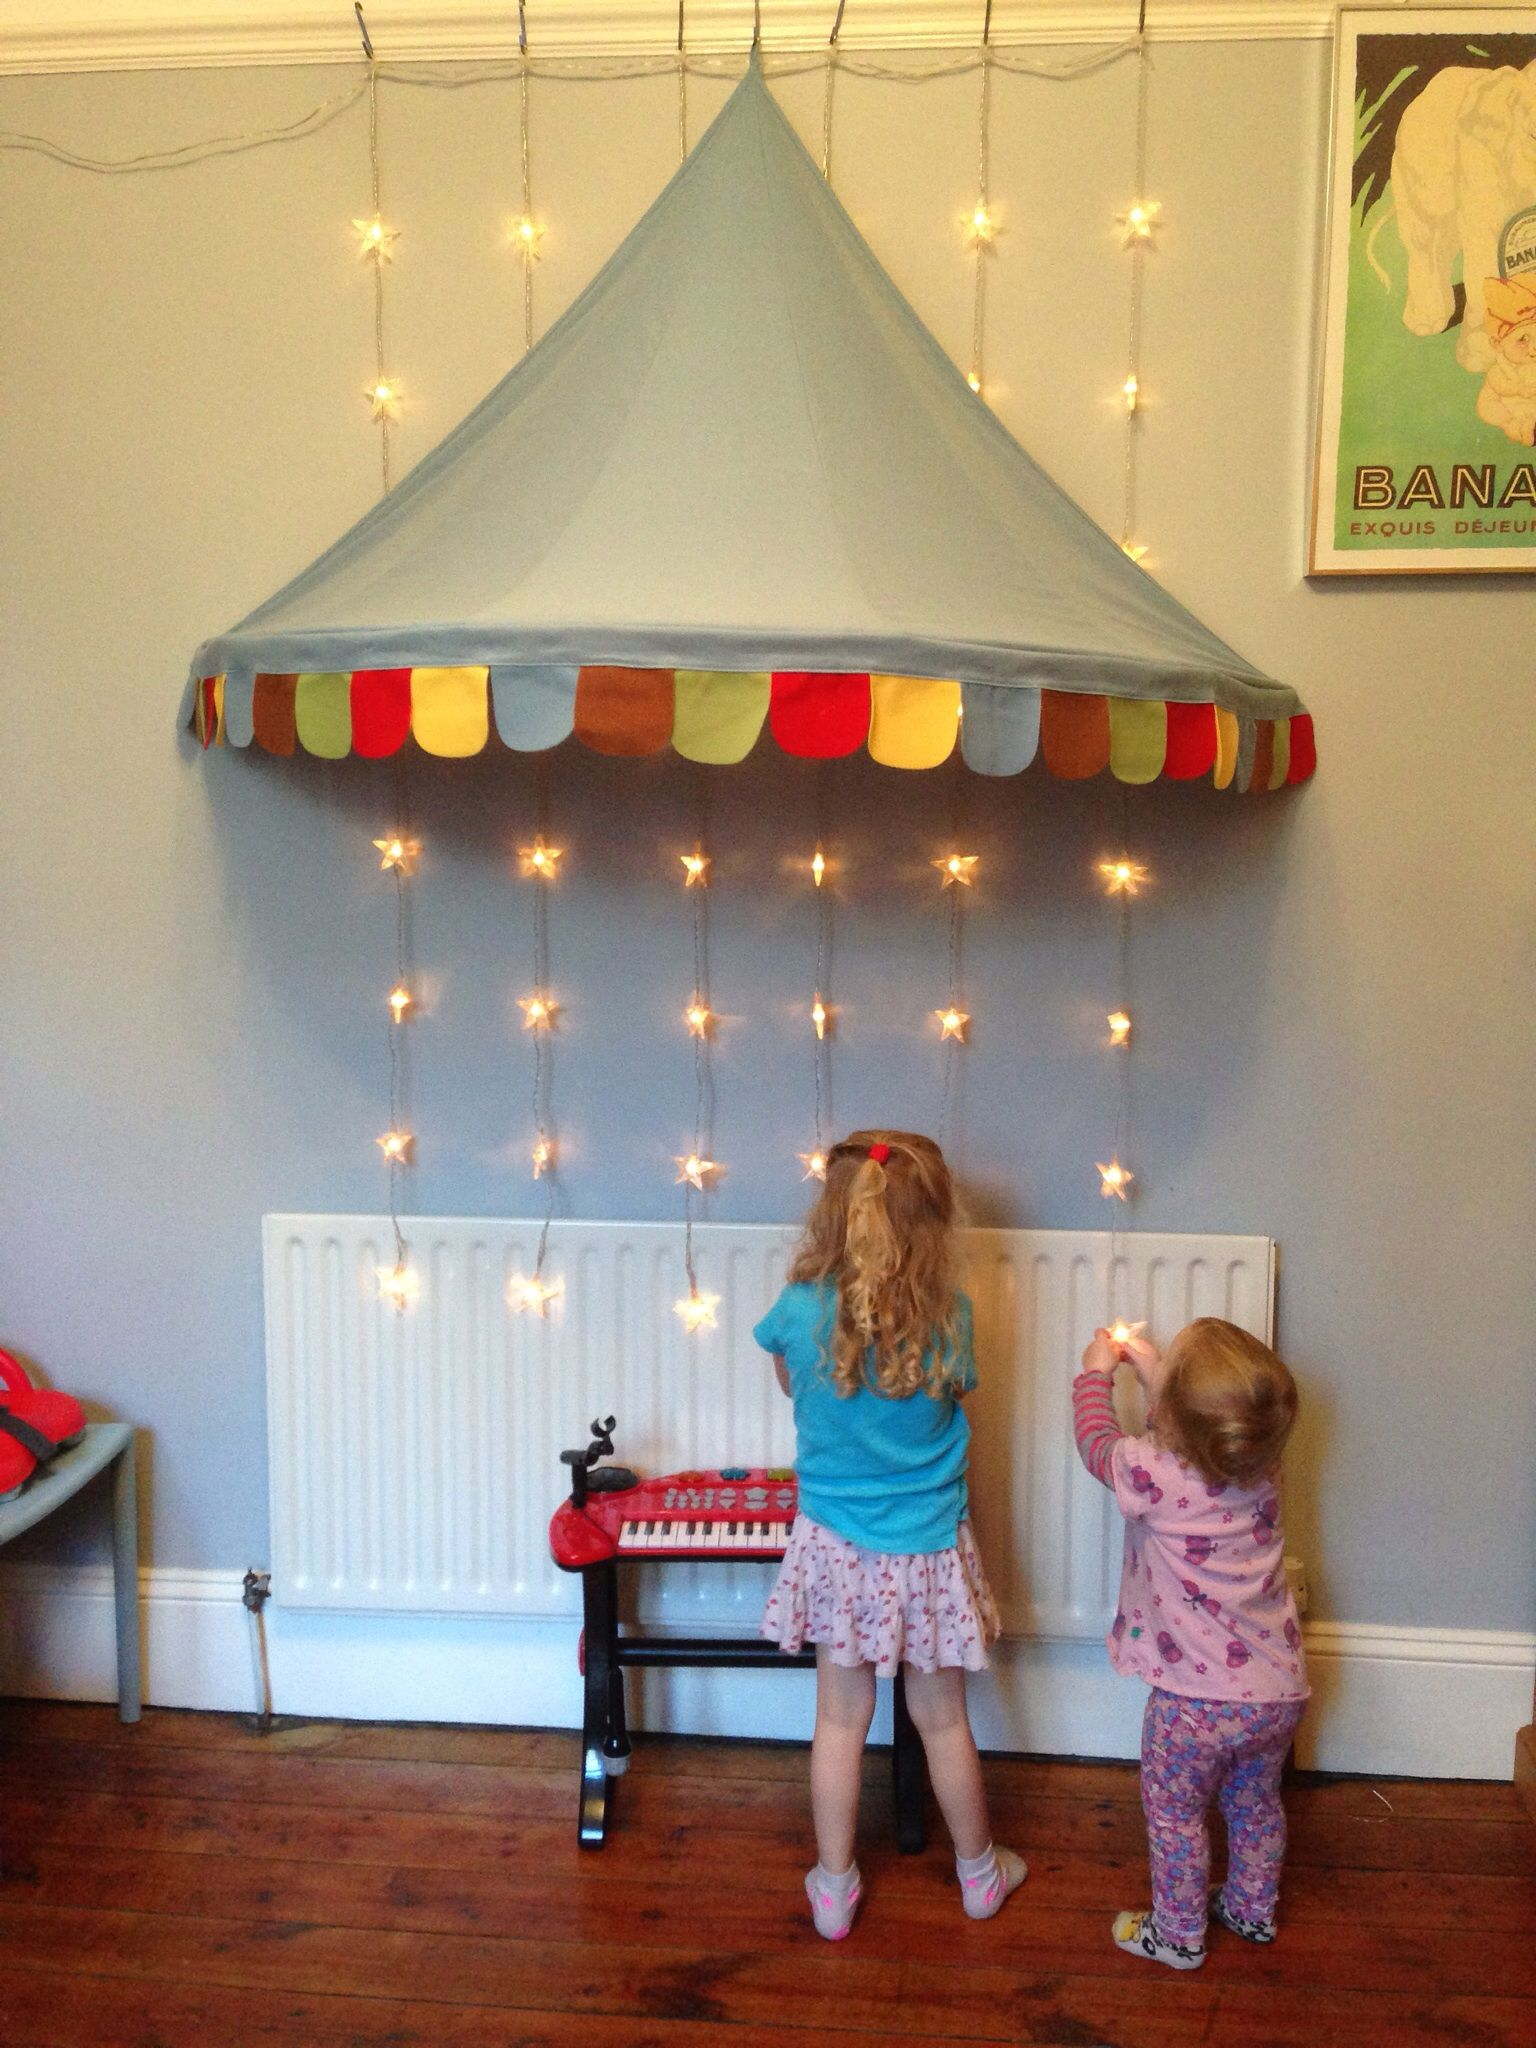 Ikea Canopy Star Lights Creating A Stage Photo Booth Setting  # Meuble Tv Kaorka Ikea